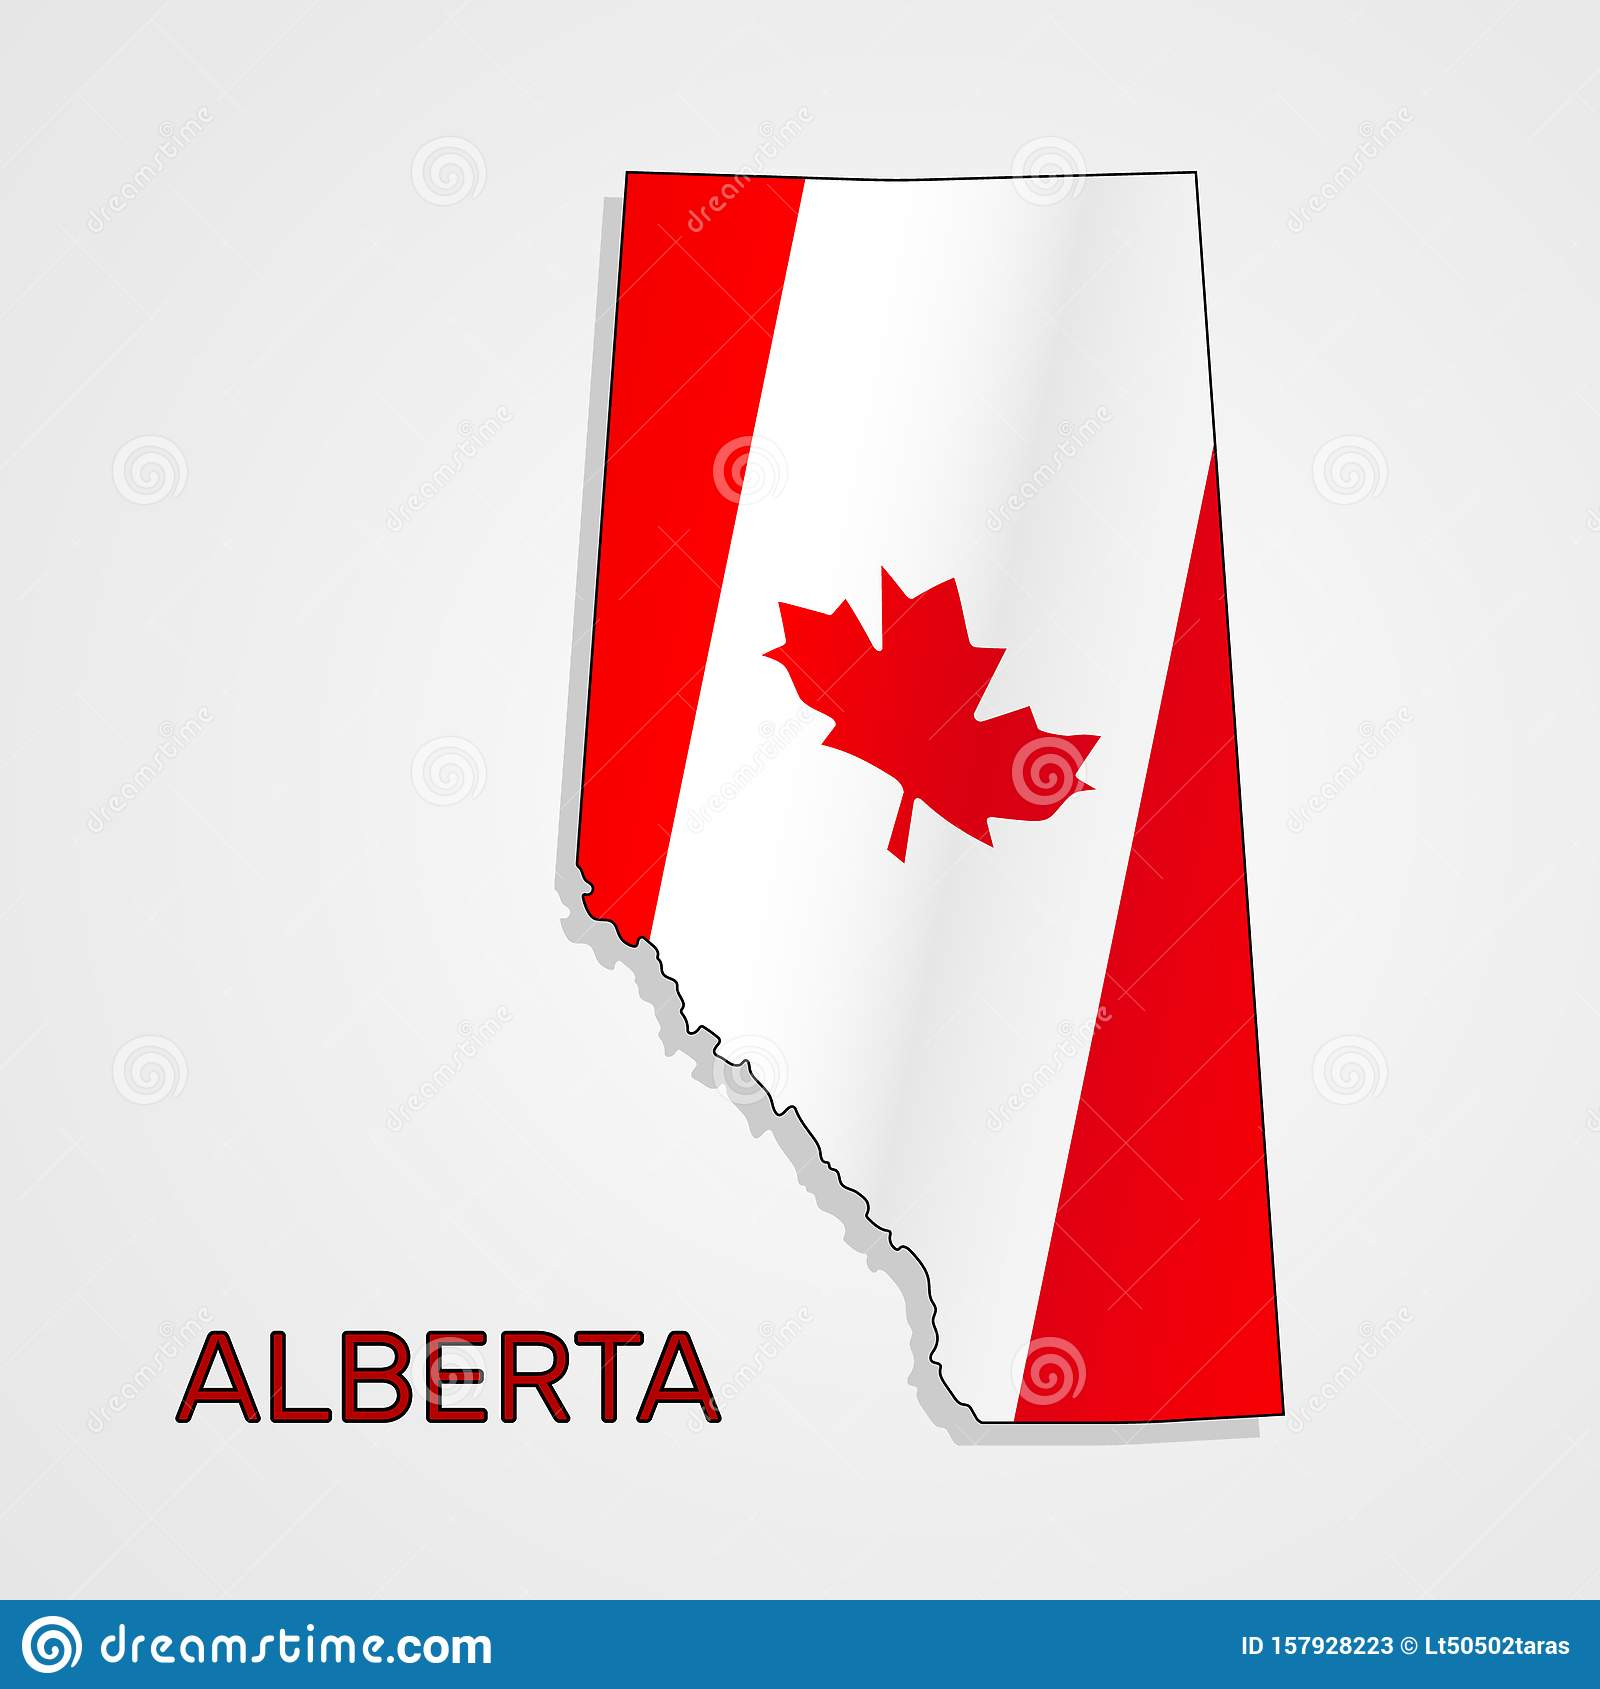 Map of Alberta combined with Canada flag - Vector